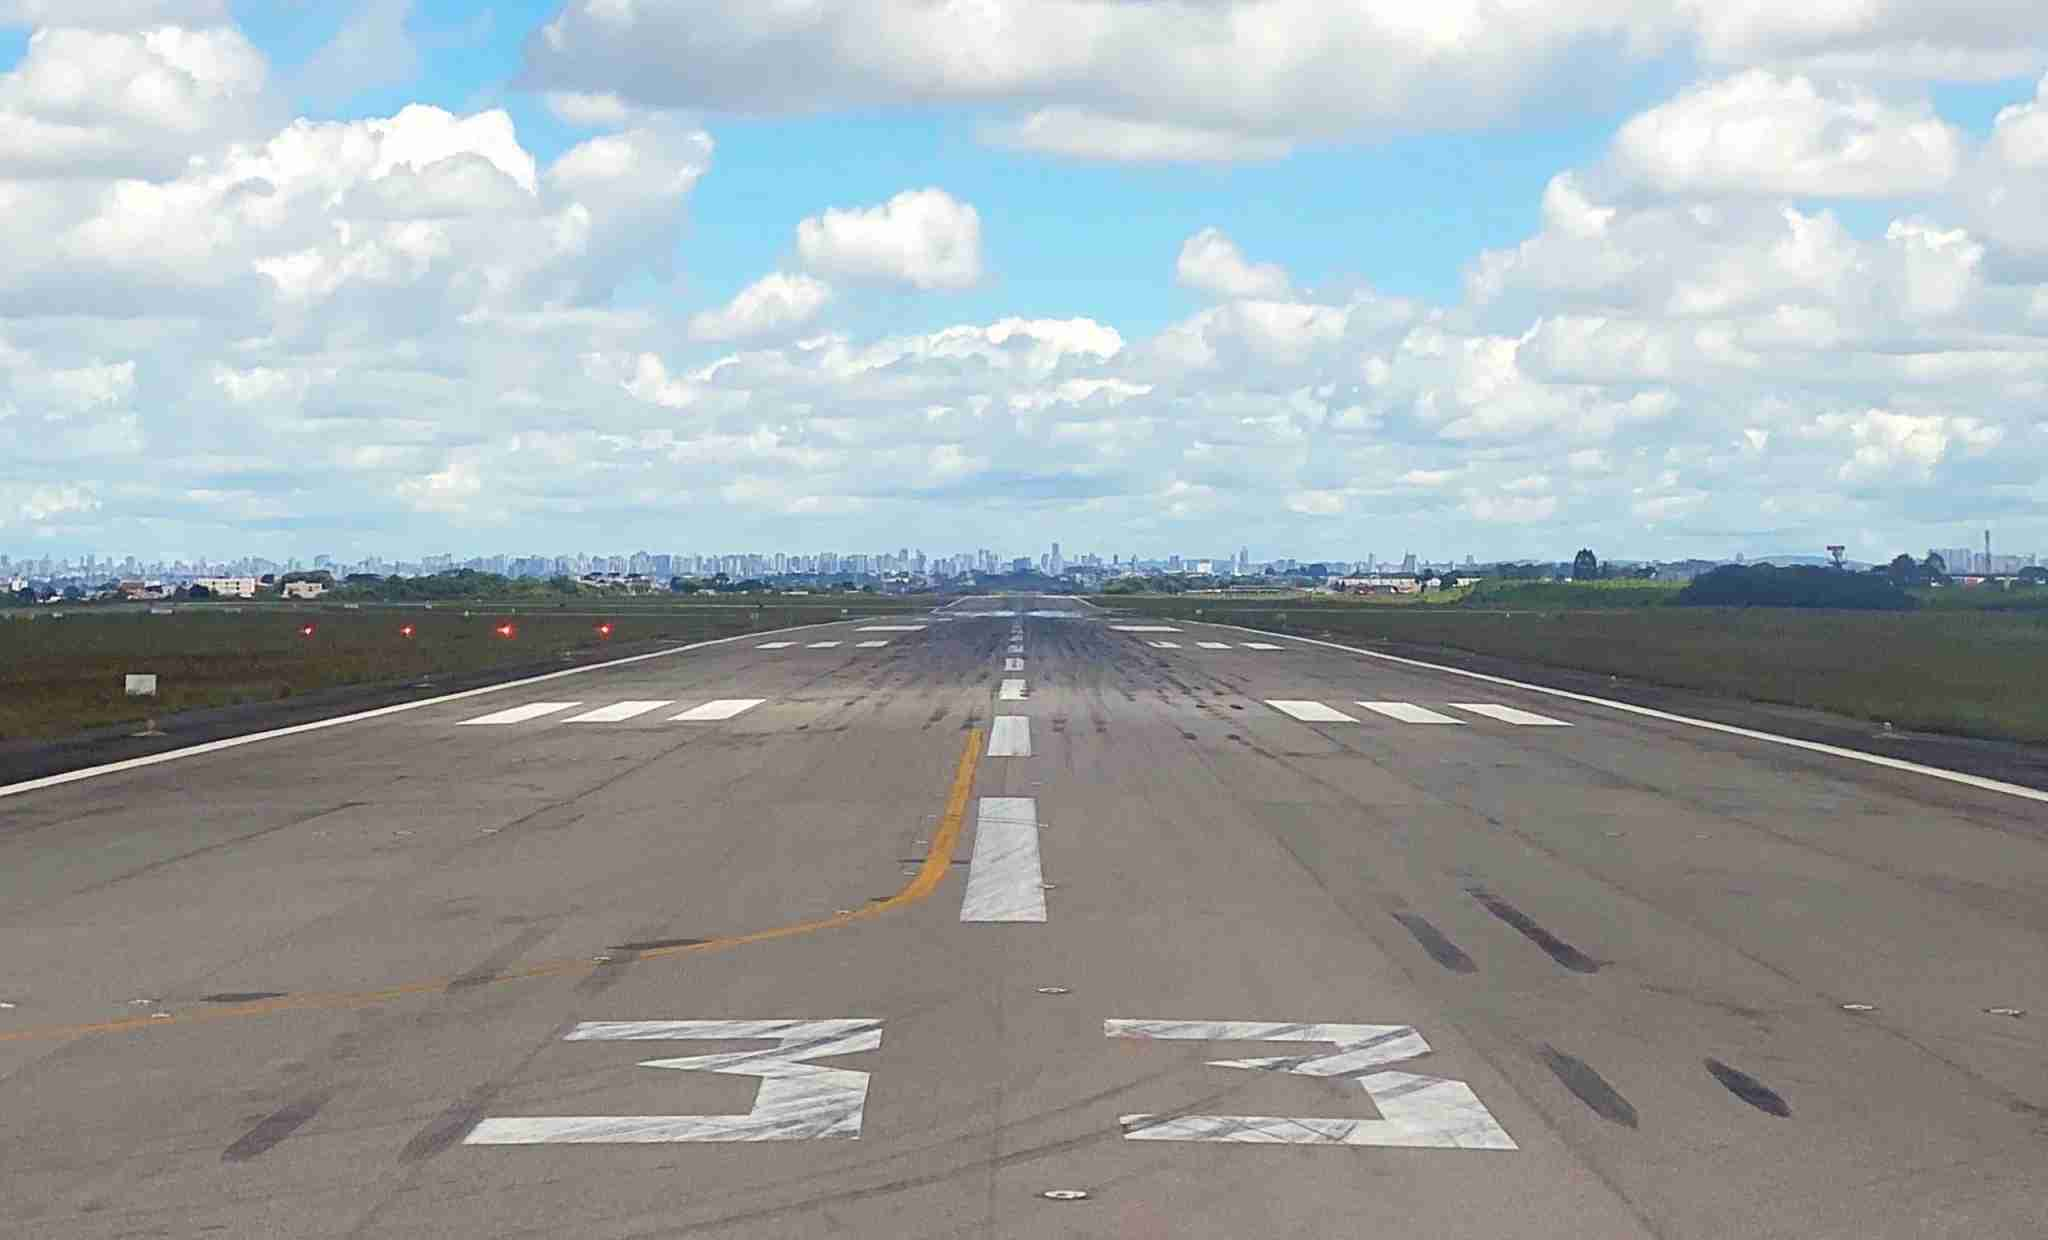 Arriving at the end of the runway at São Paulo (CGH) airport (Photo by Daniel Ross/The Points Guy)